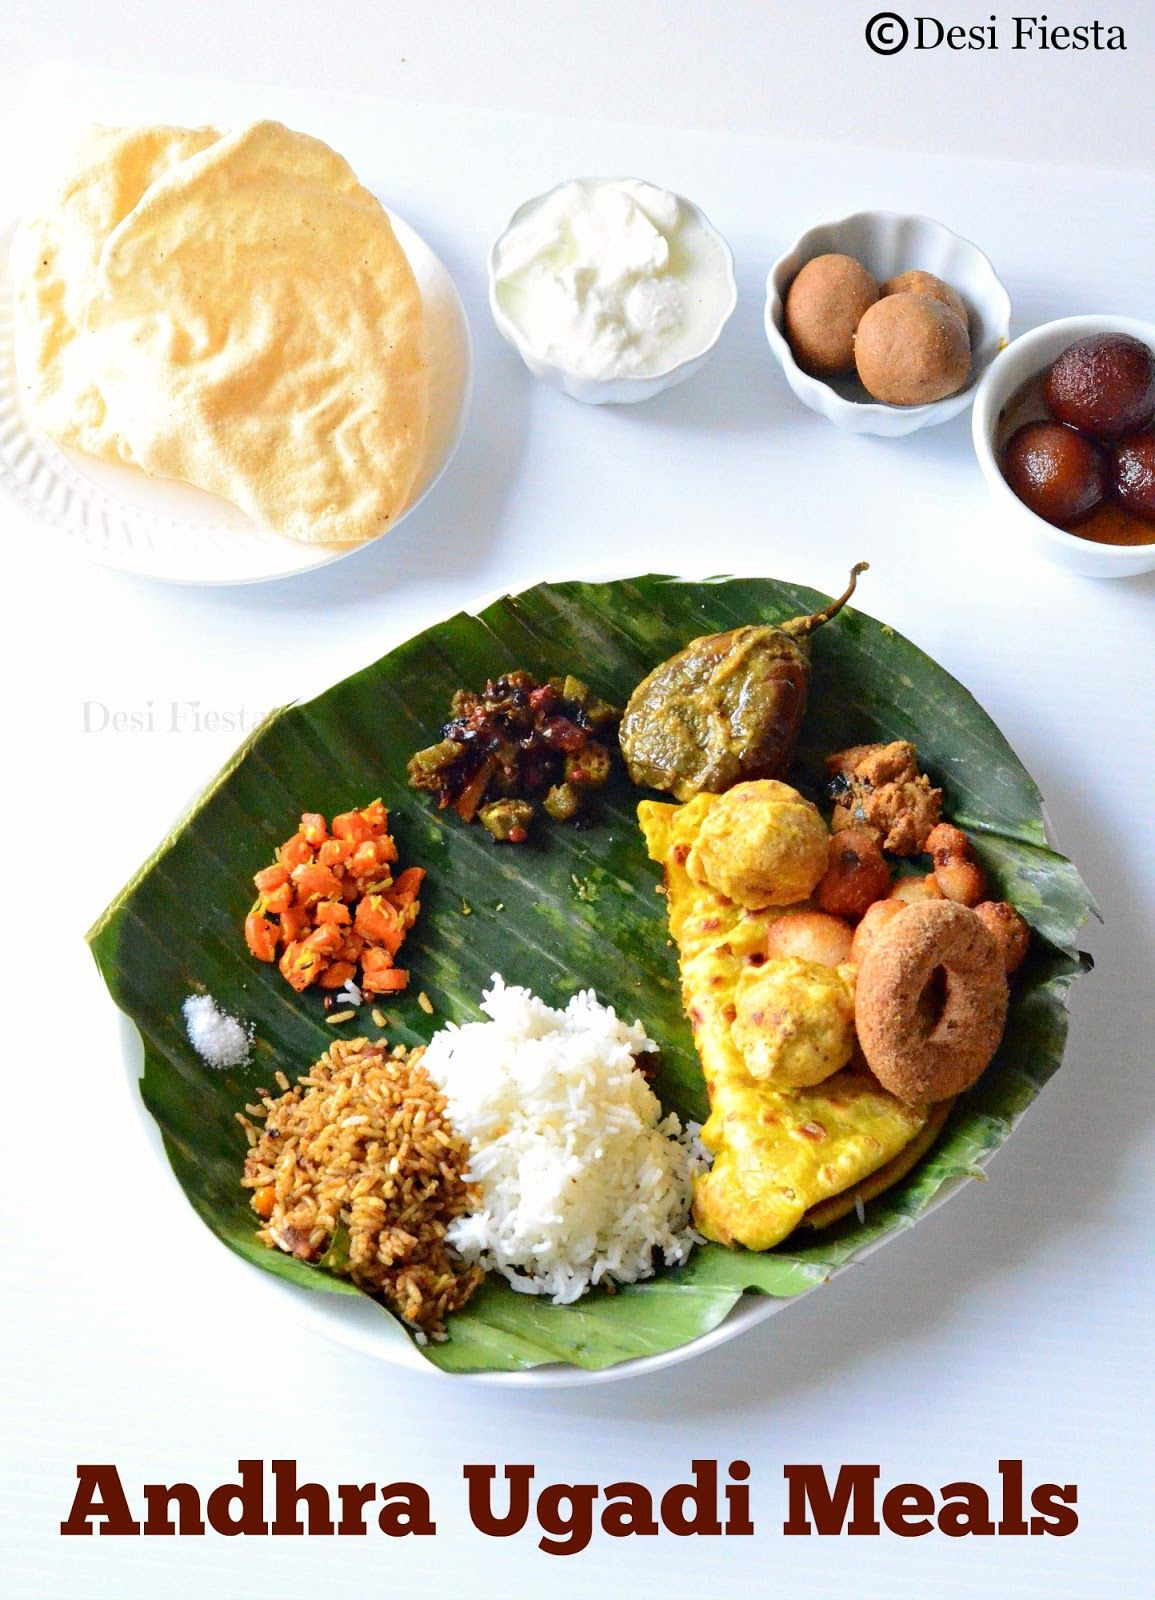 Adhra pradesh thali andhra thali pinterest lunches meals and food adhra pradesh thali veg recipesbaking forumfinder Choice Image